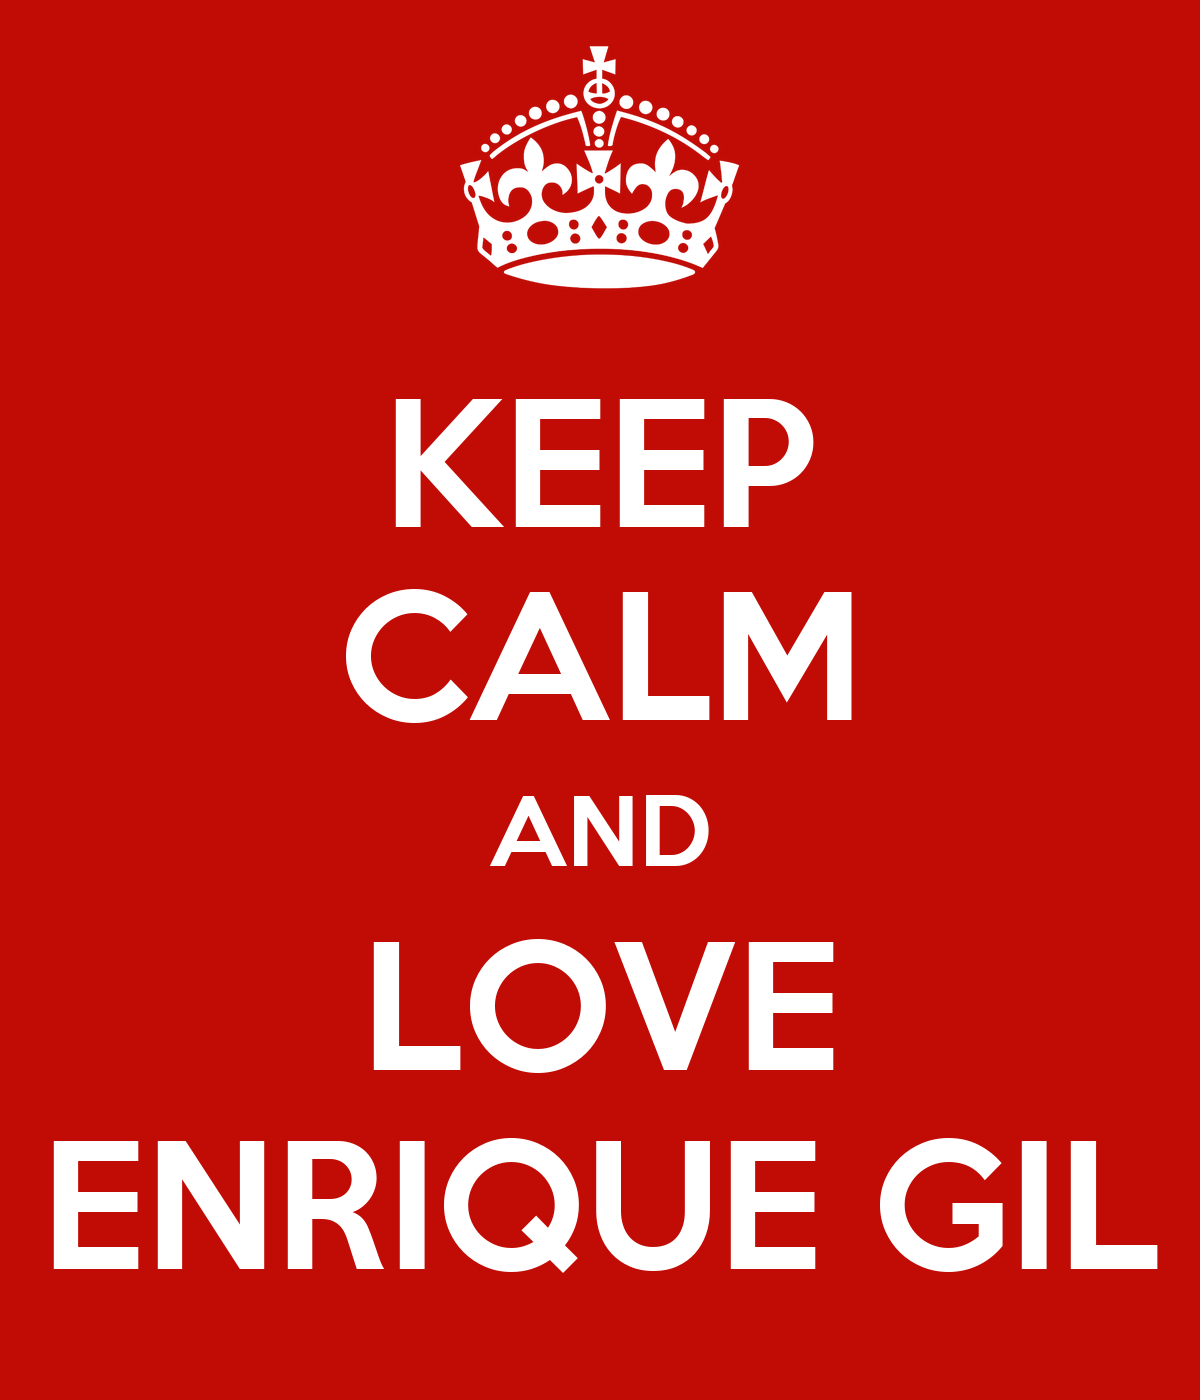 KEEP CALM AND LOVE ENRIQUE GIL